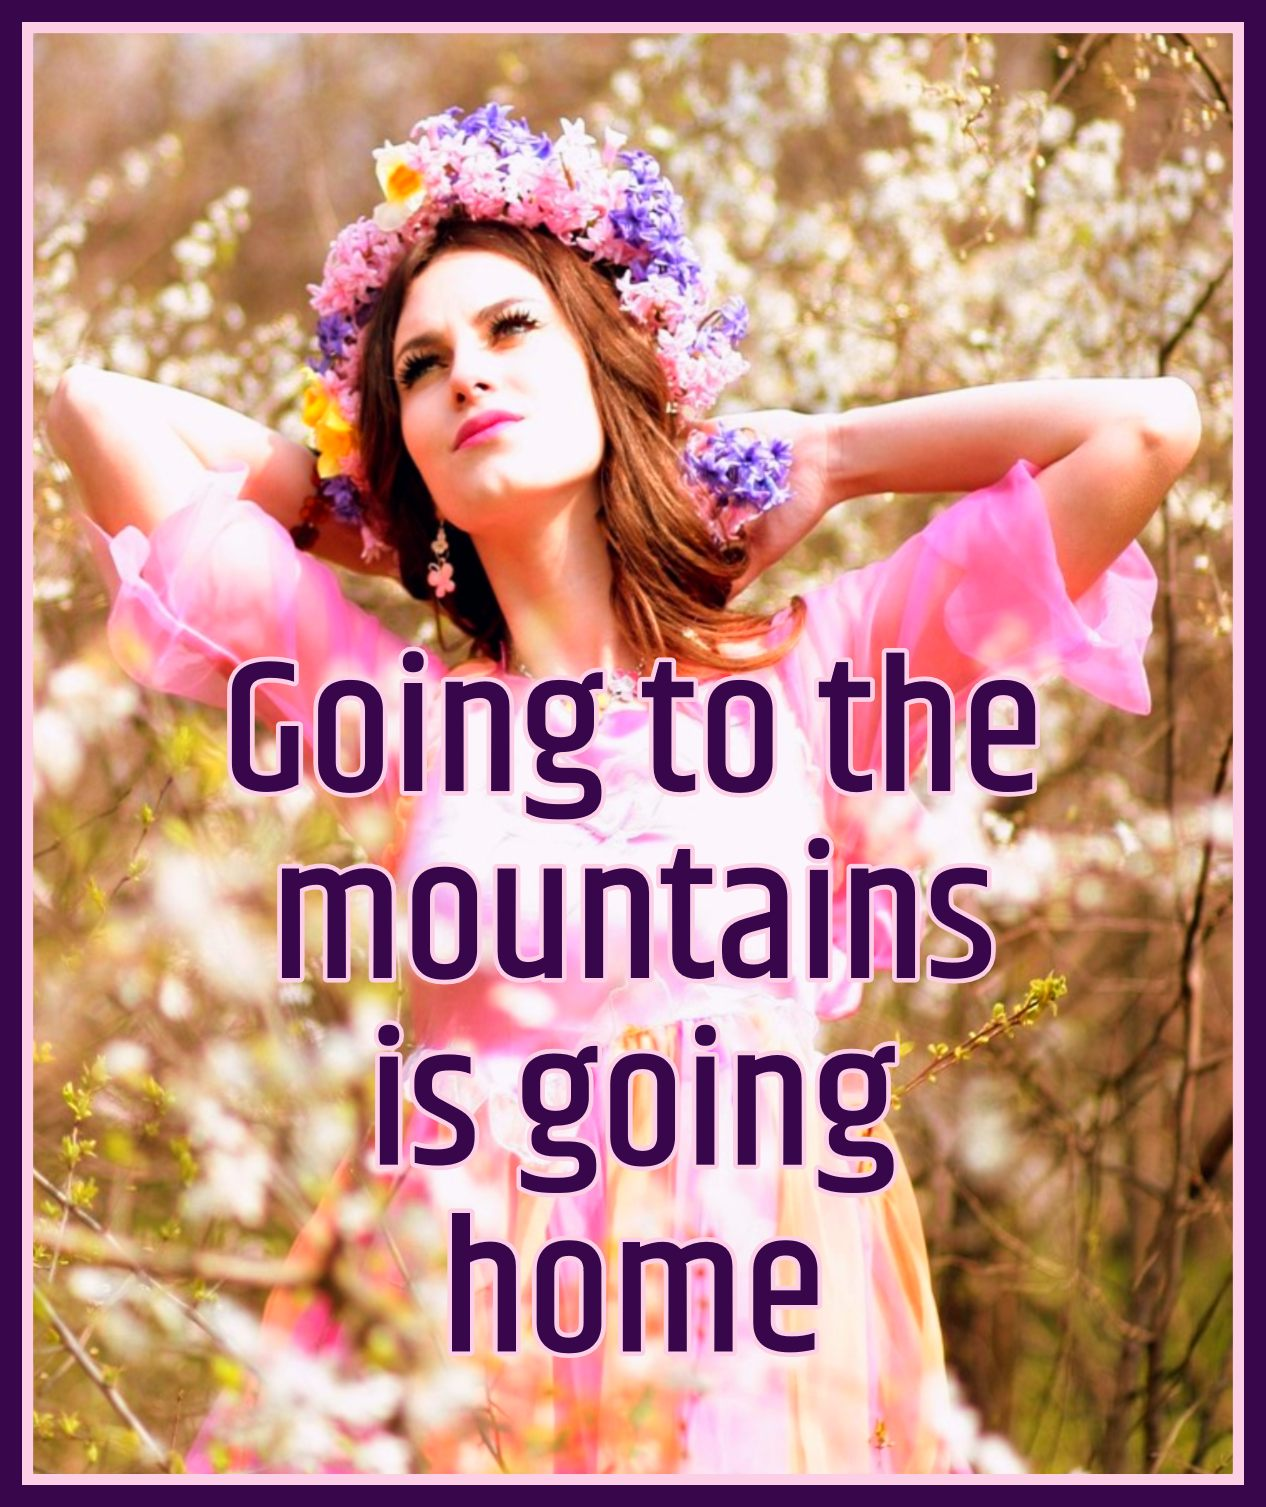 John Muir Going to the mountians is going home